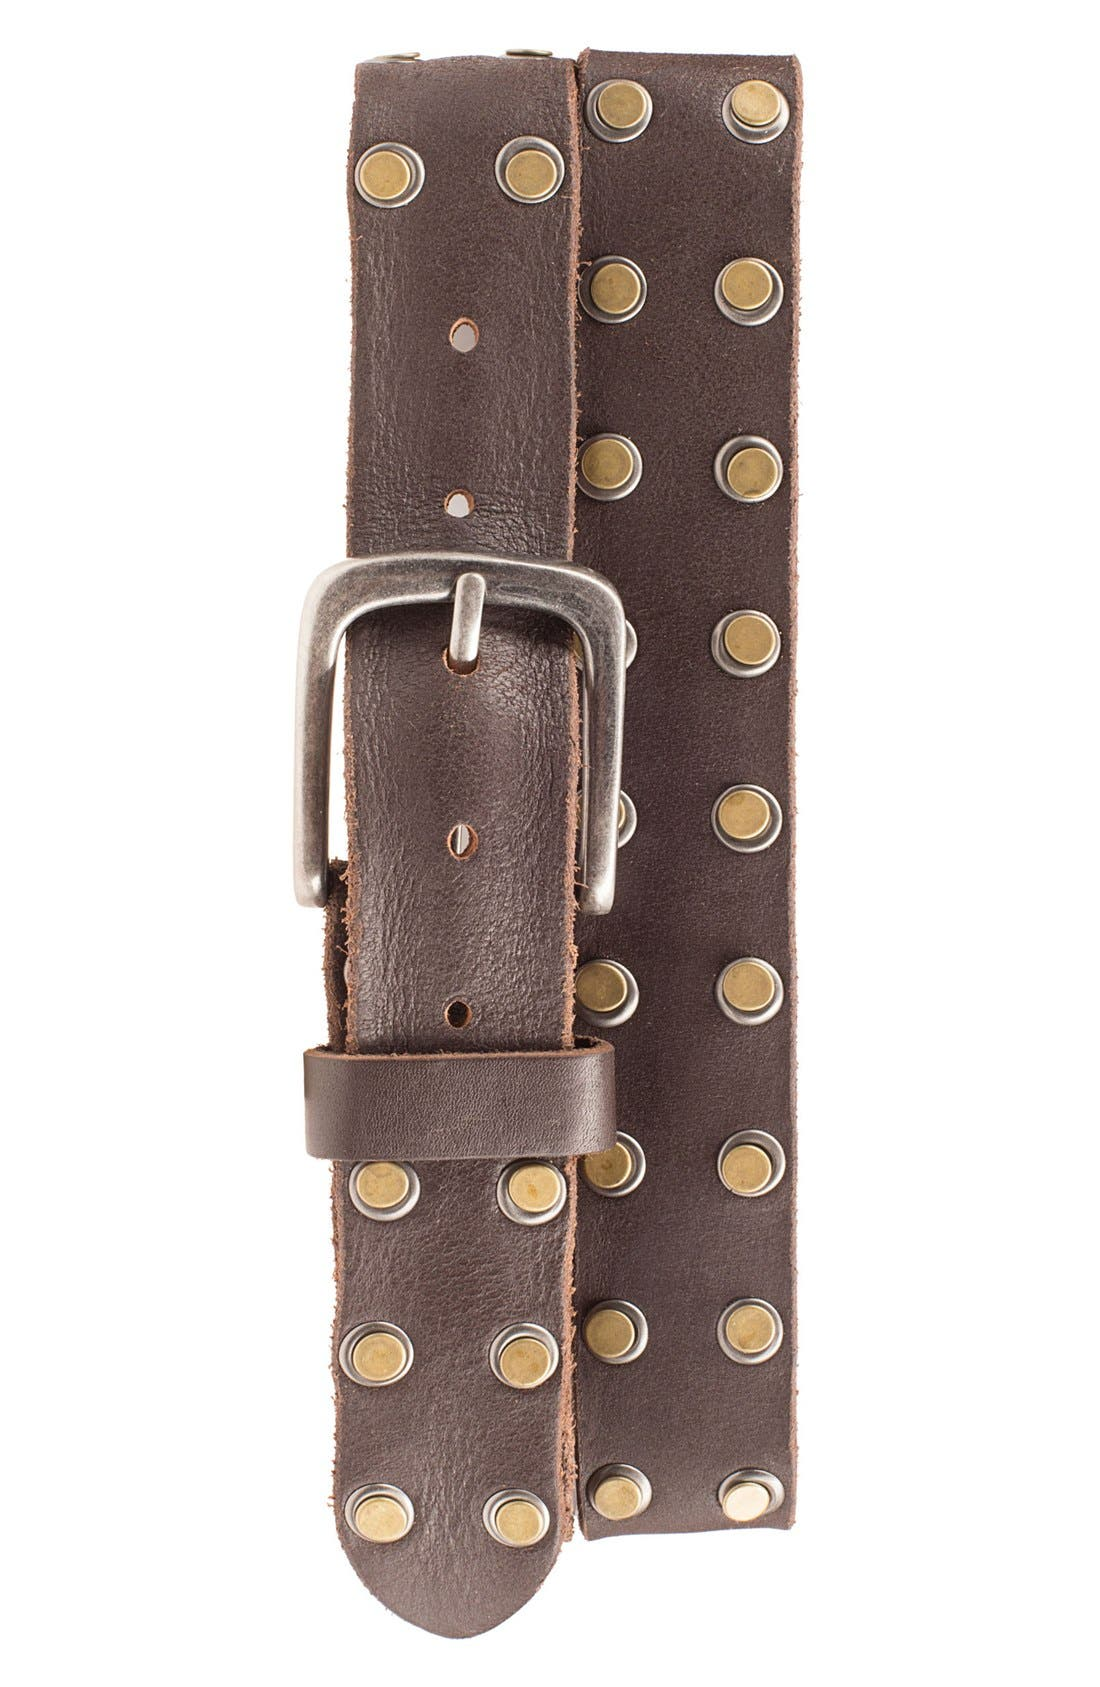 Bill Adler 1981 'Outlaw' Leather Belt